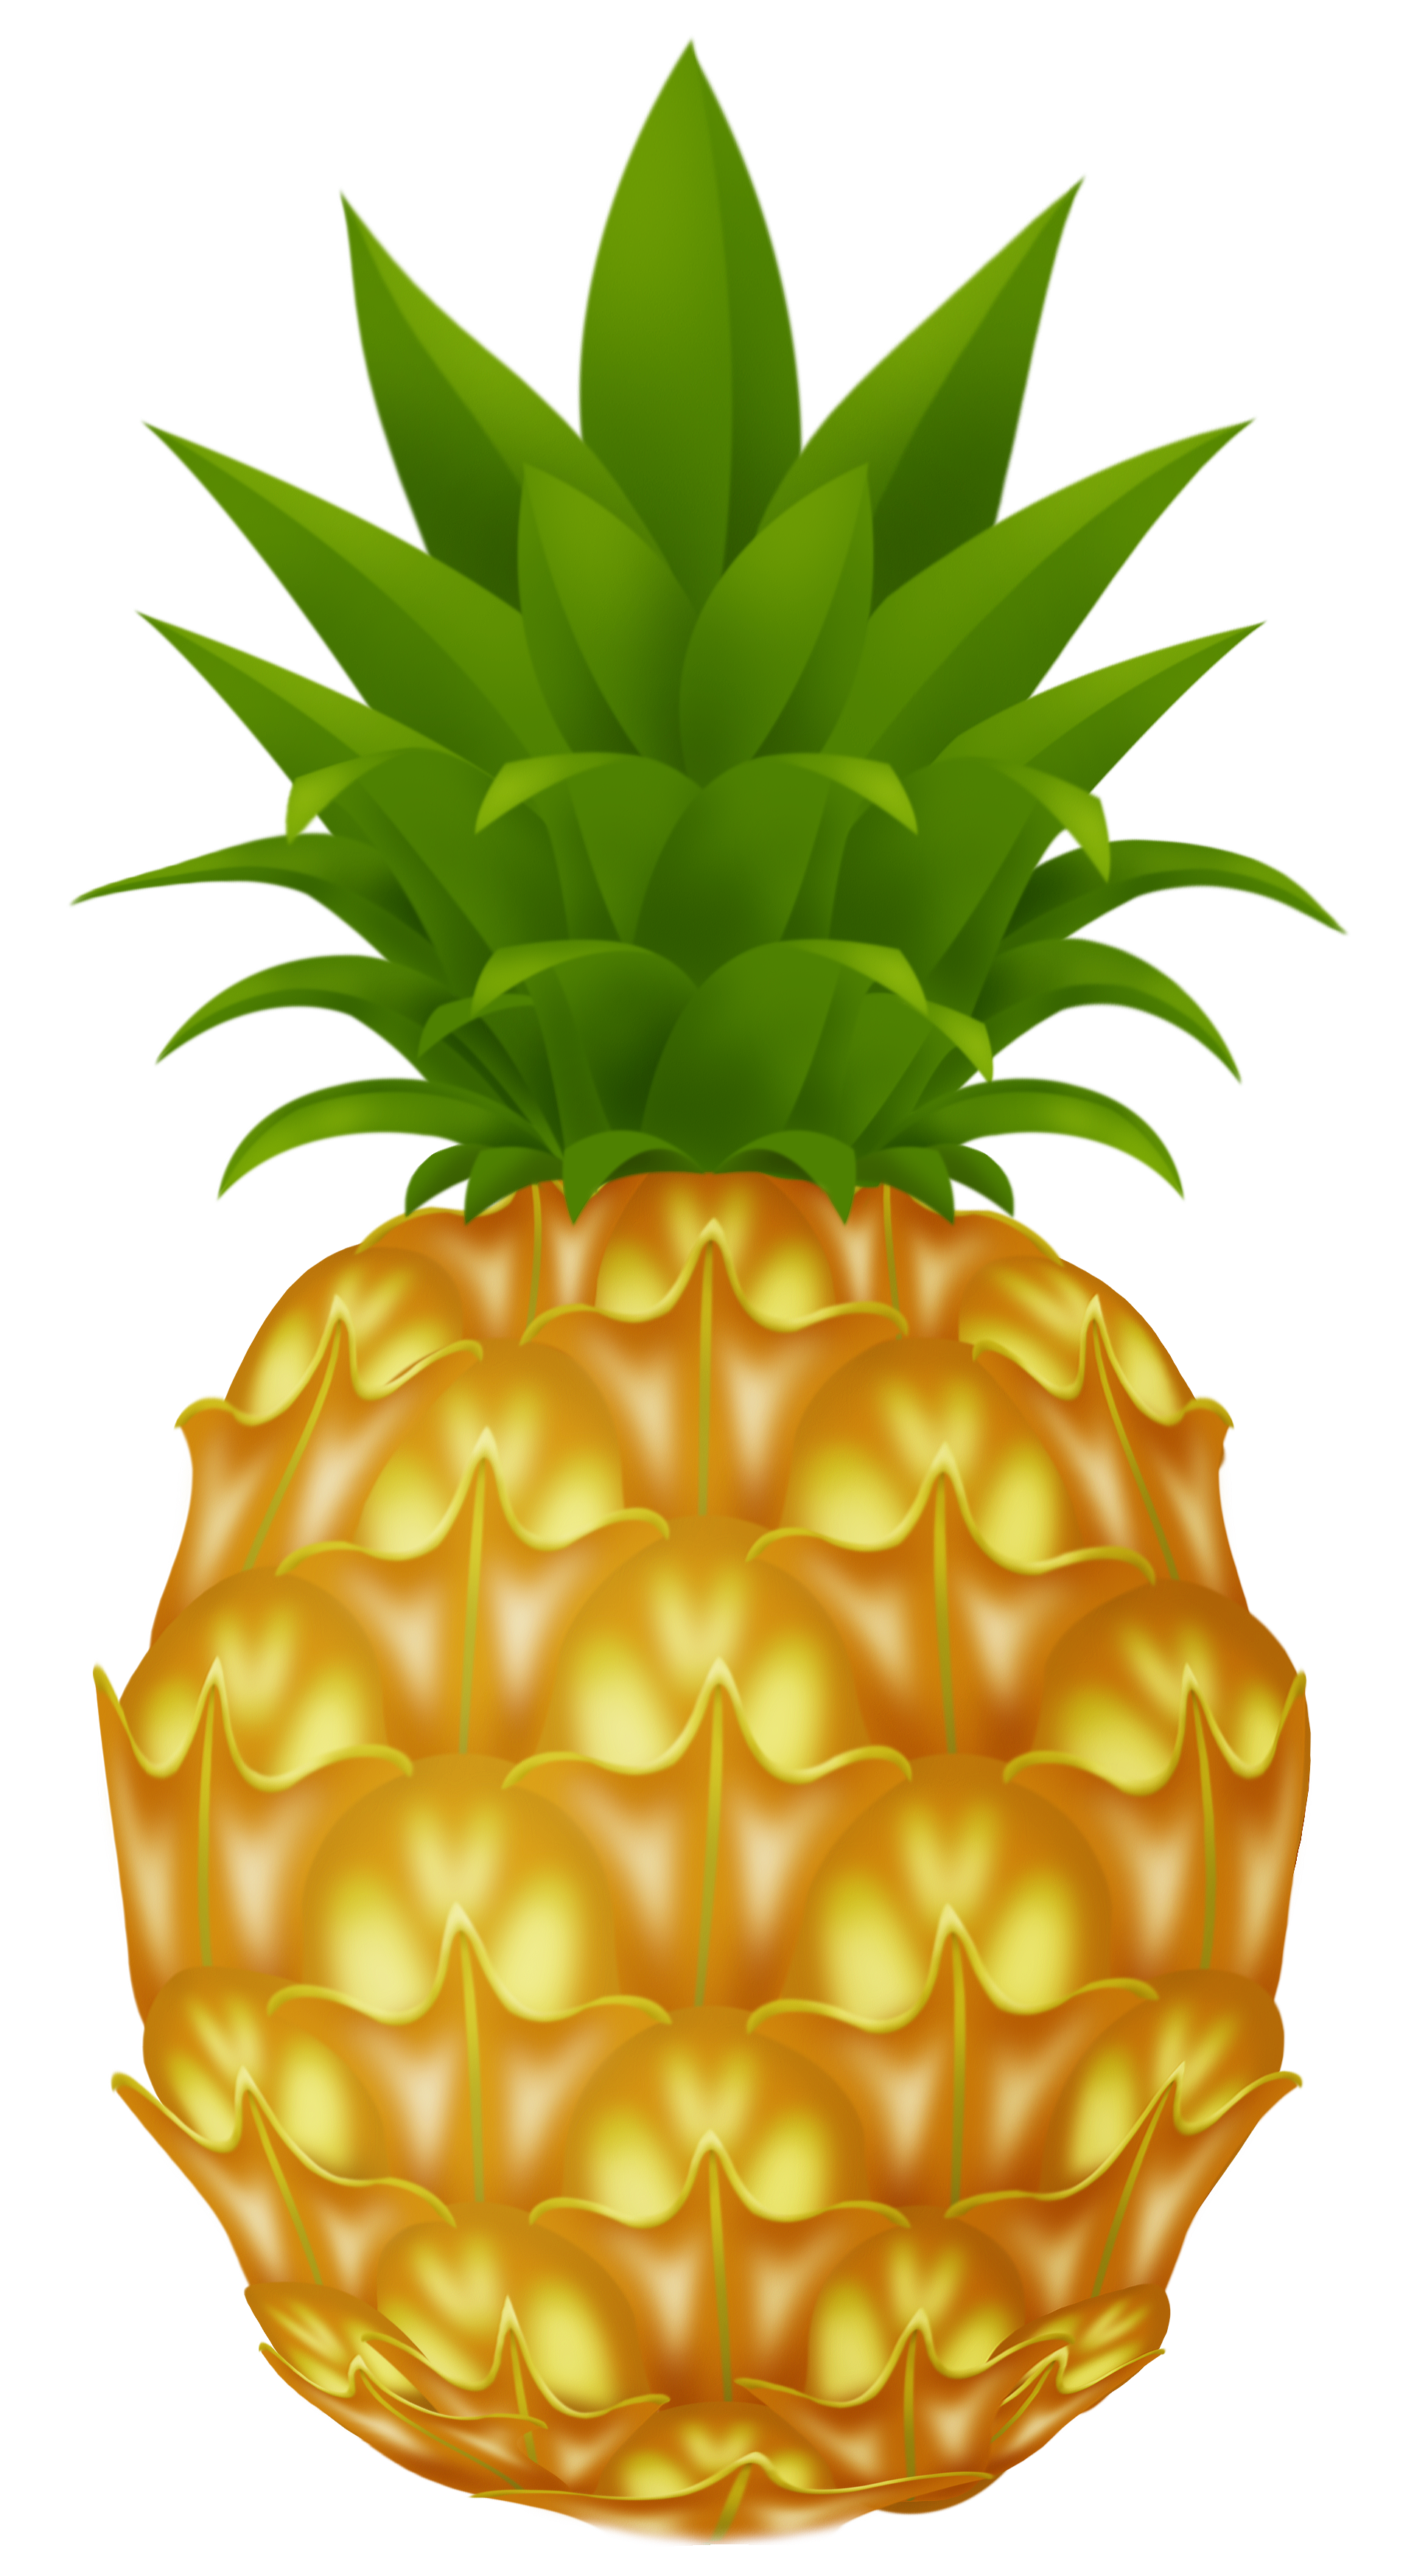 Free Pineapple Transparent Background, Download Free Clip.